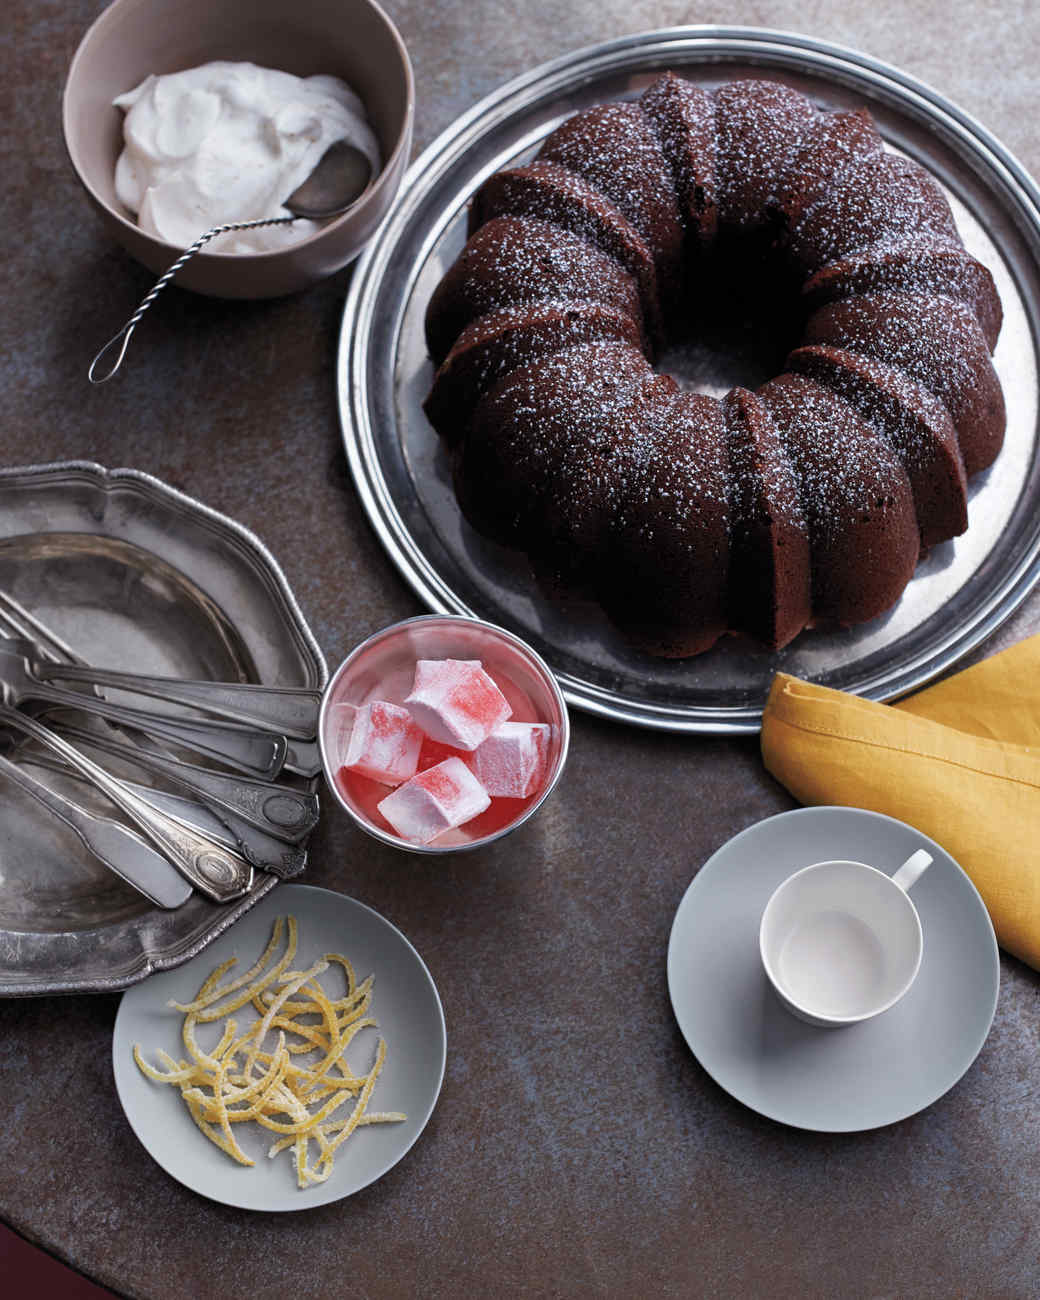 chocolate-bundt-020-d112571.jpg